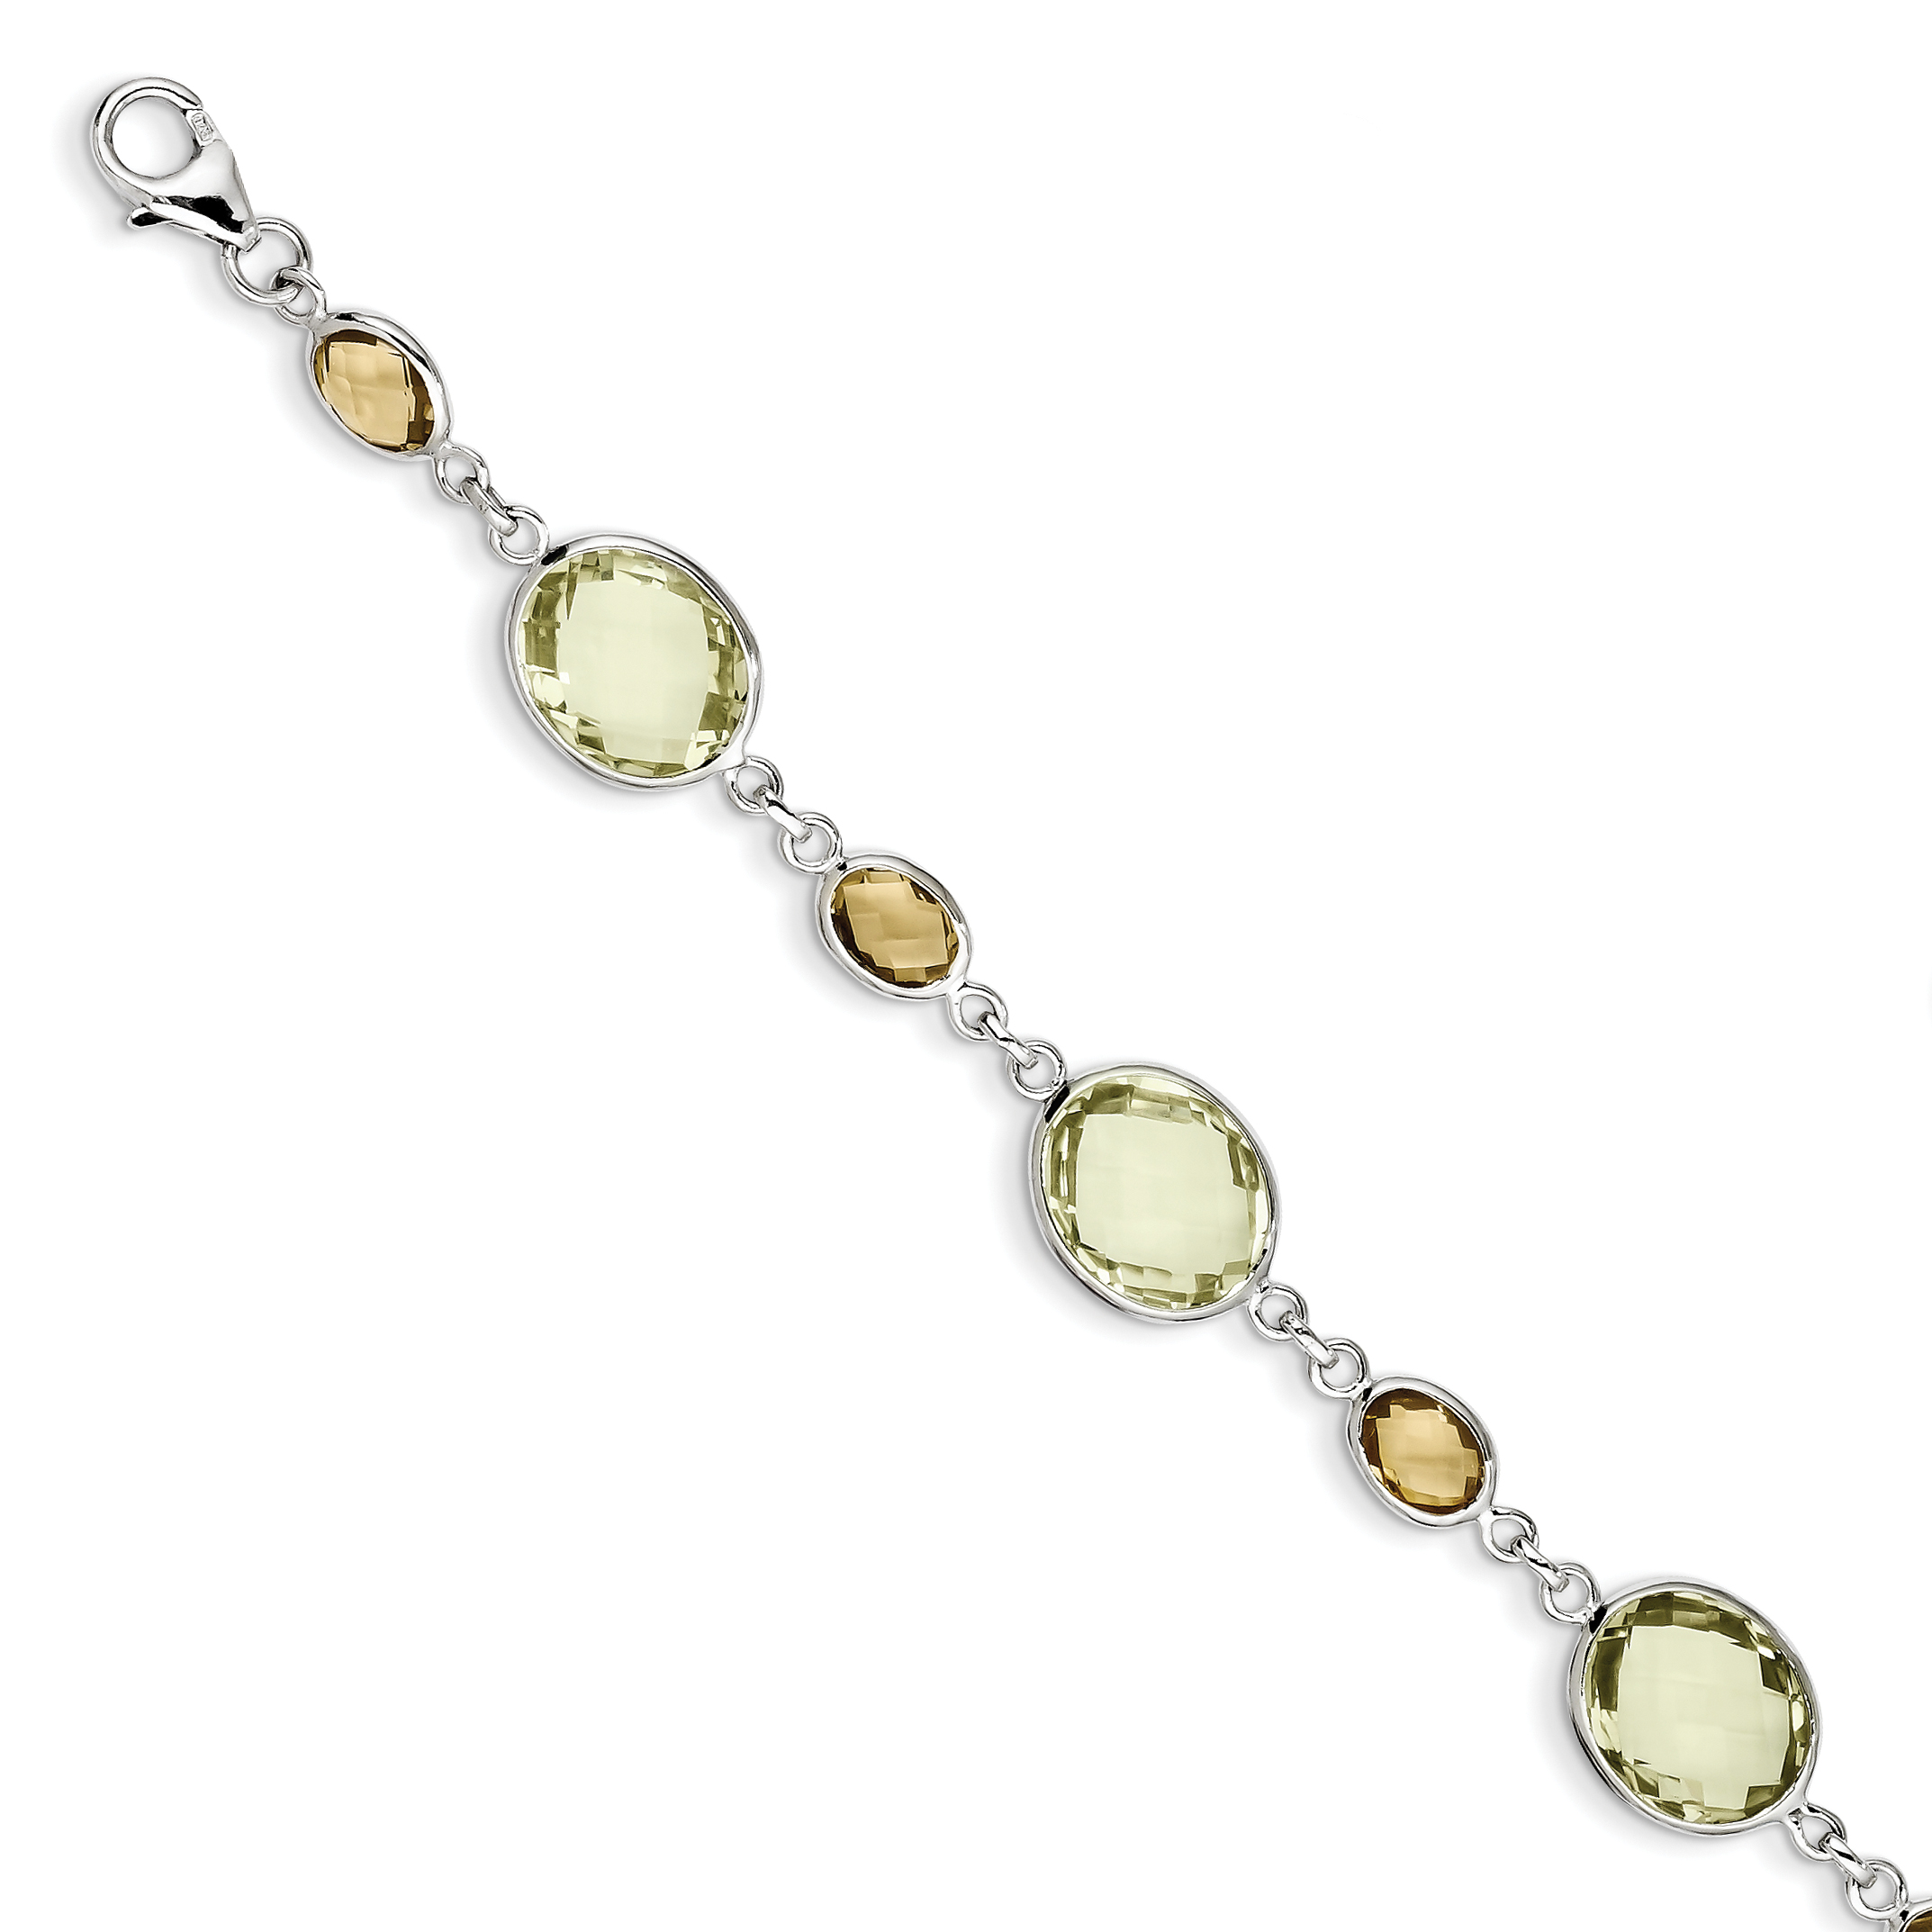 Roy Rose Jewelry Sterling Silver Lemon Quartz and Citrine Oval Bracelet ~ Length 7'' inches by